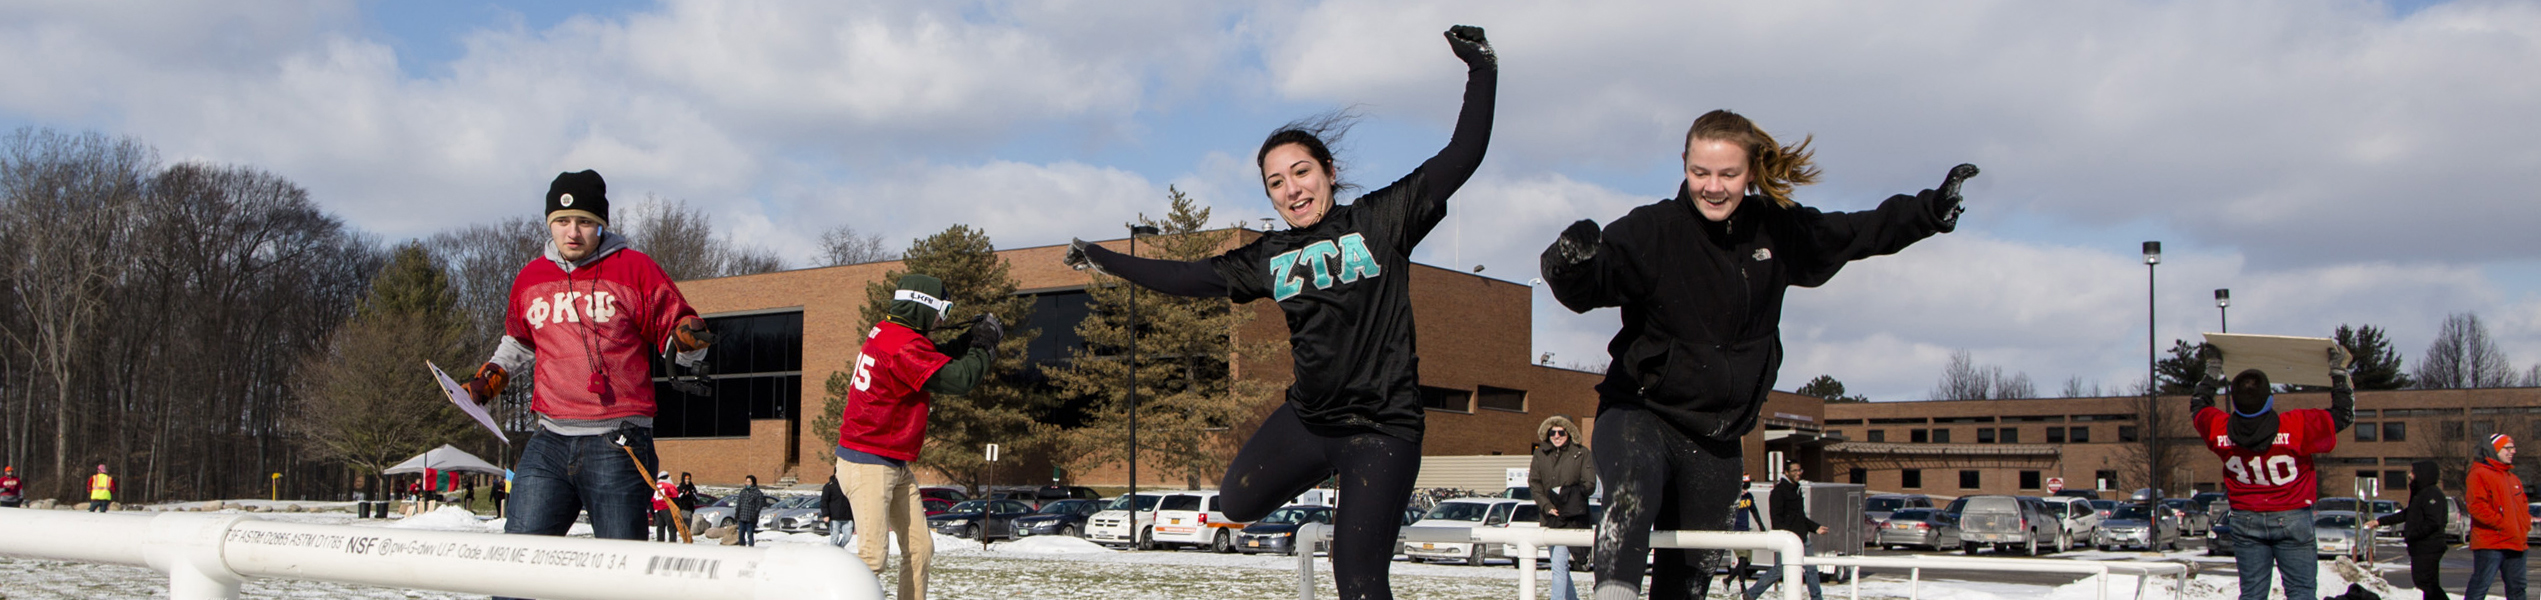 students doing hurtles at RIT Freezefest in the snow